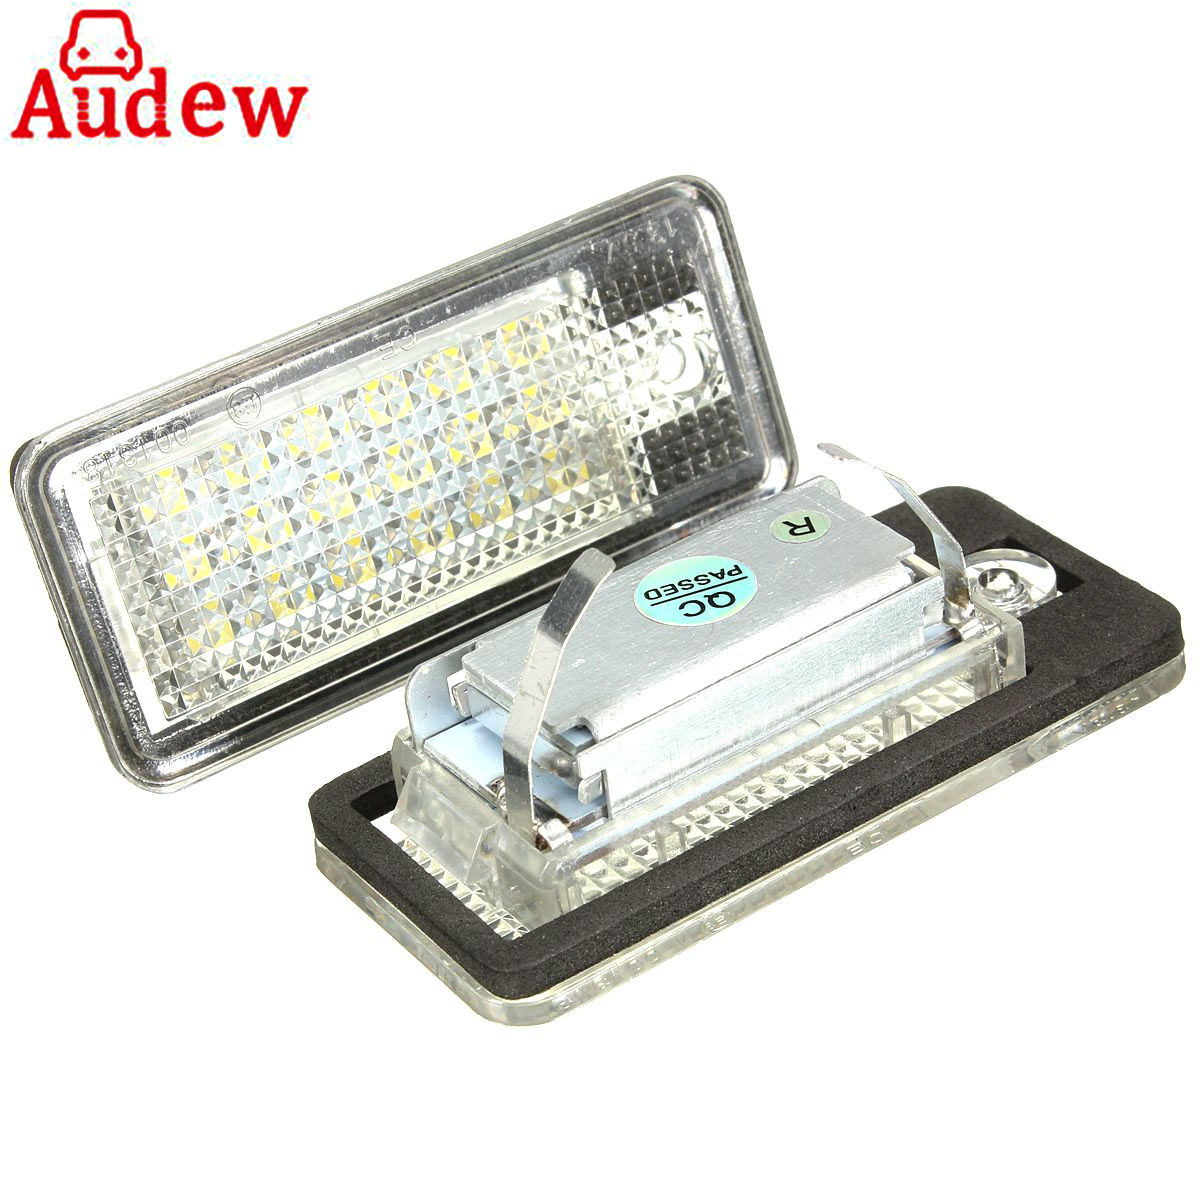 2Pcs Car Error Free 18 LED License Number Plate Light White Lamp For Audi A3 S3 A4 S4 B6 B7 A6 S6 A8 Q7 цена